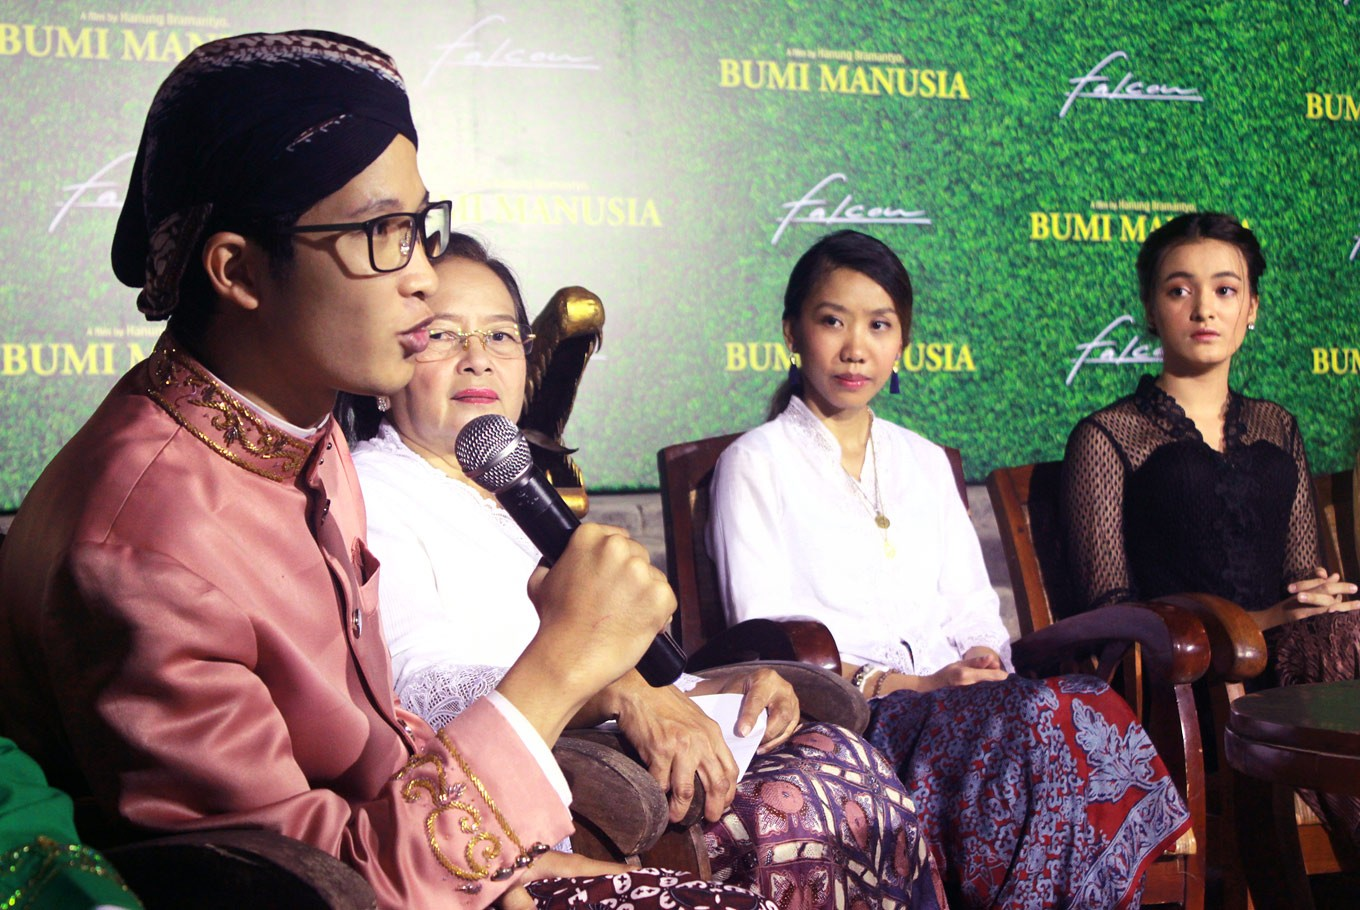 'Bumi Manusia' simplified to lure millennial generation